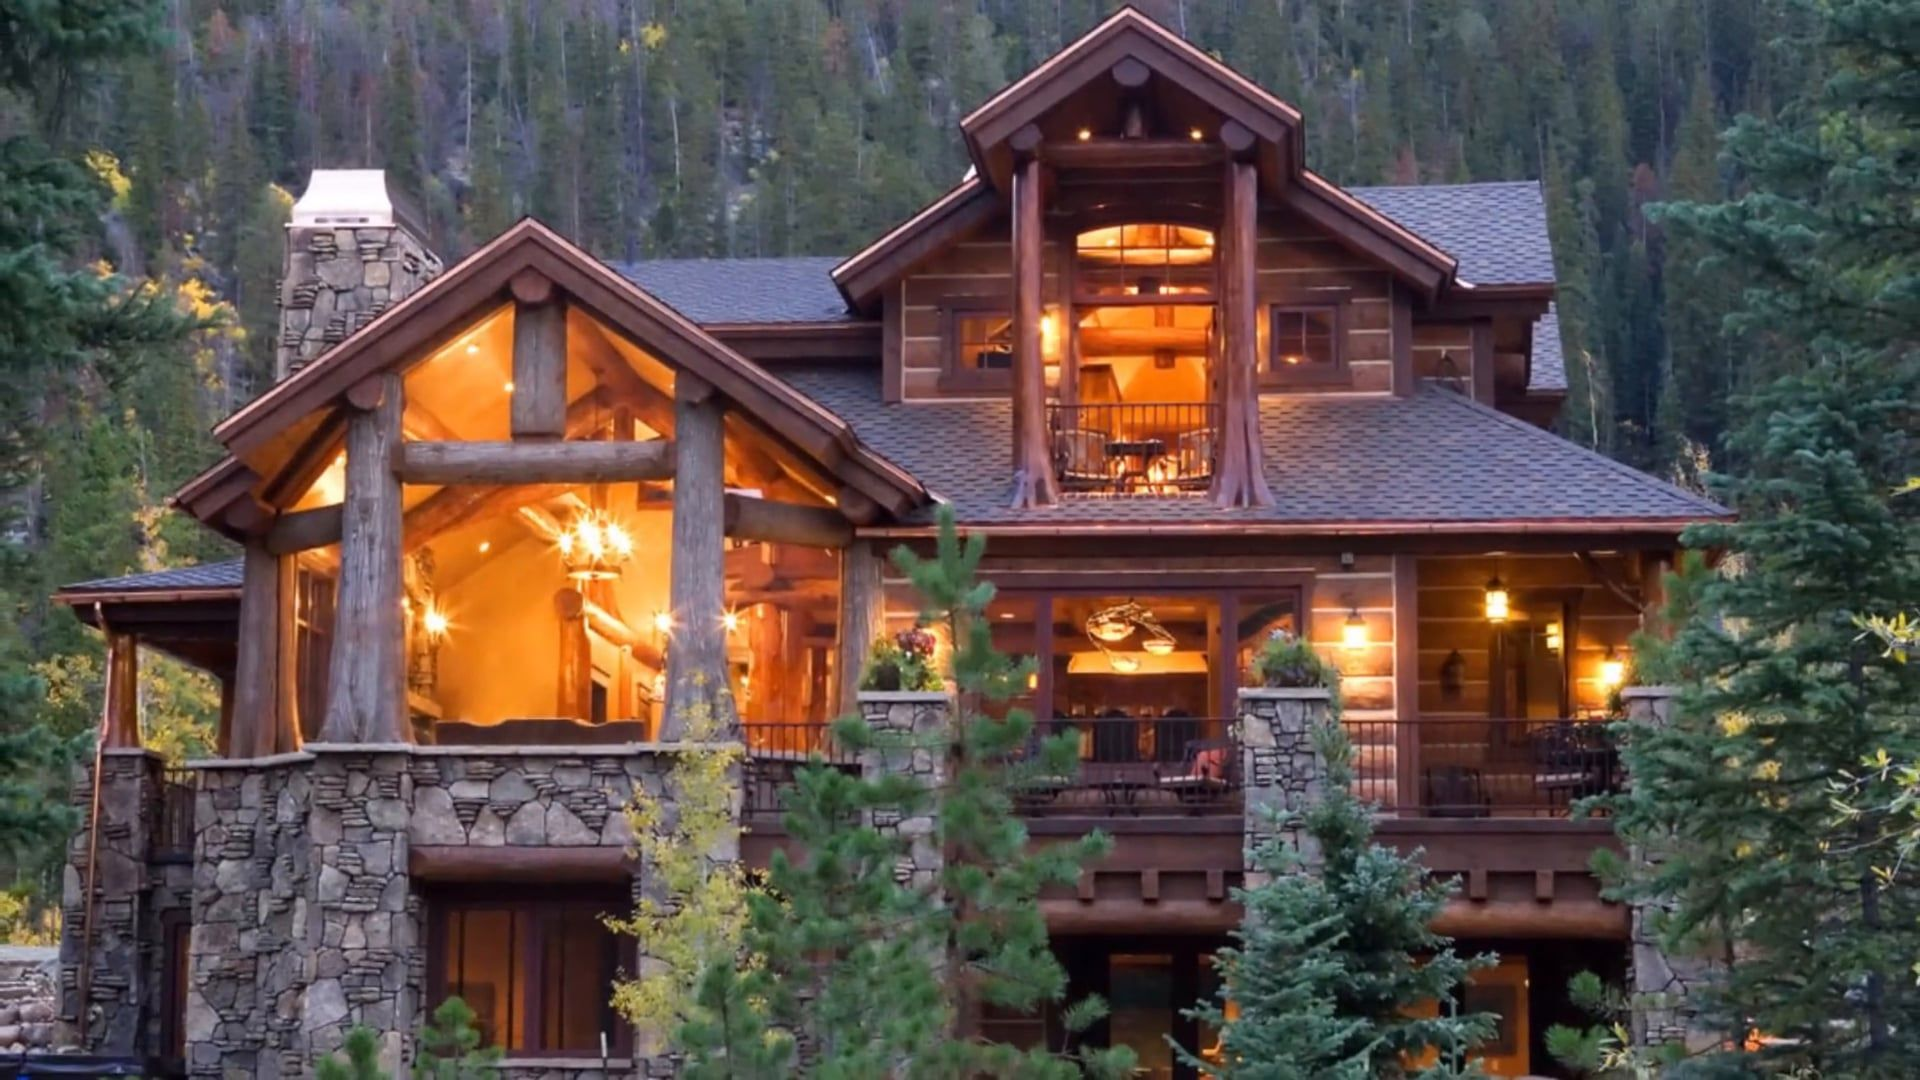 Edgewood Log Homes American Home Design Cabin Style Homes Small Cabin Designs